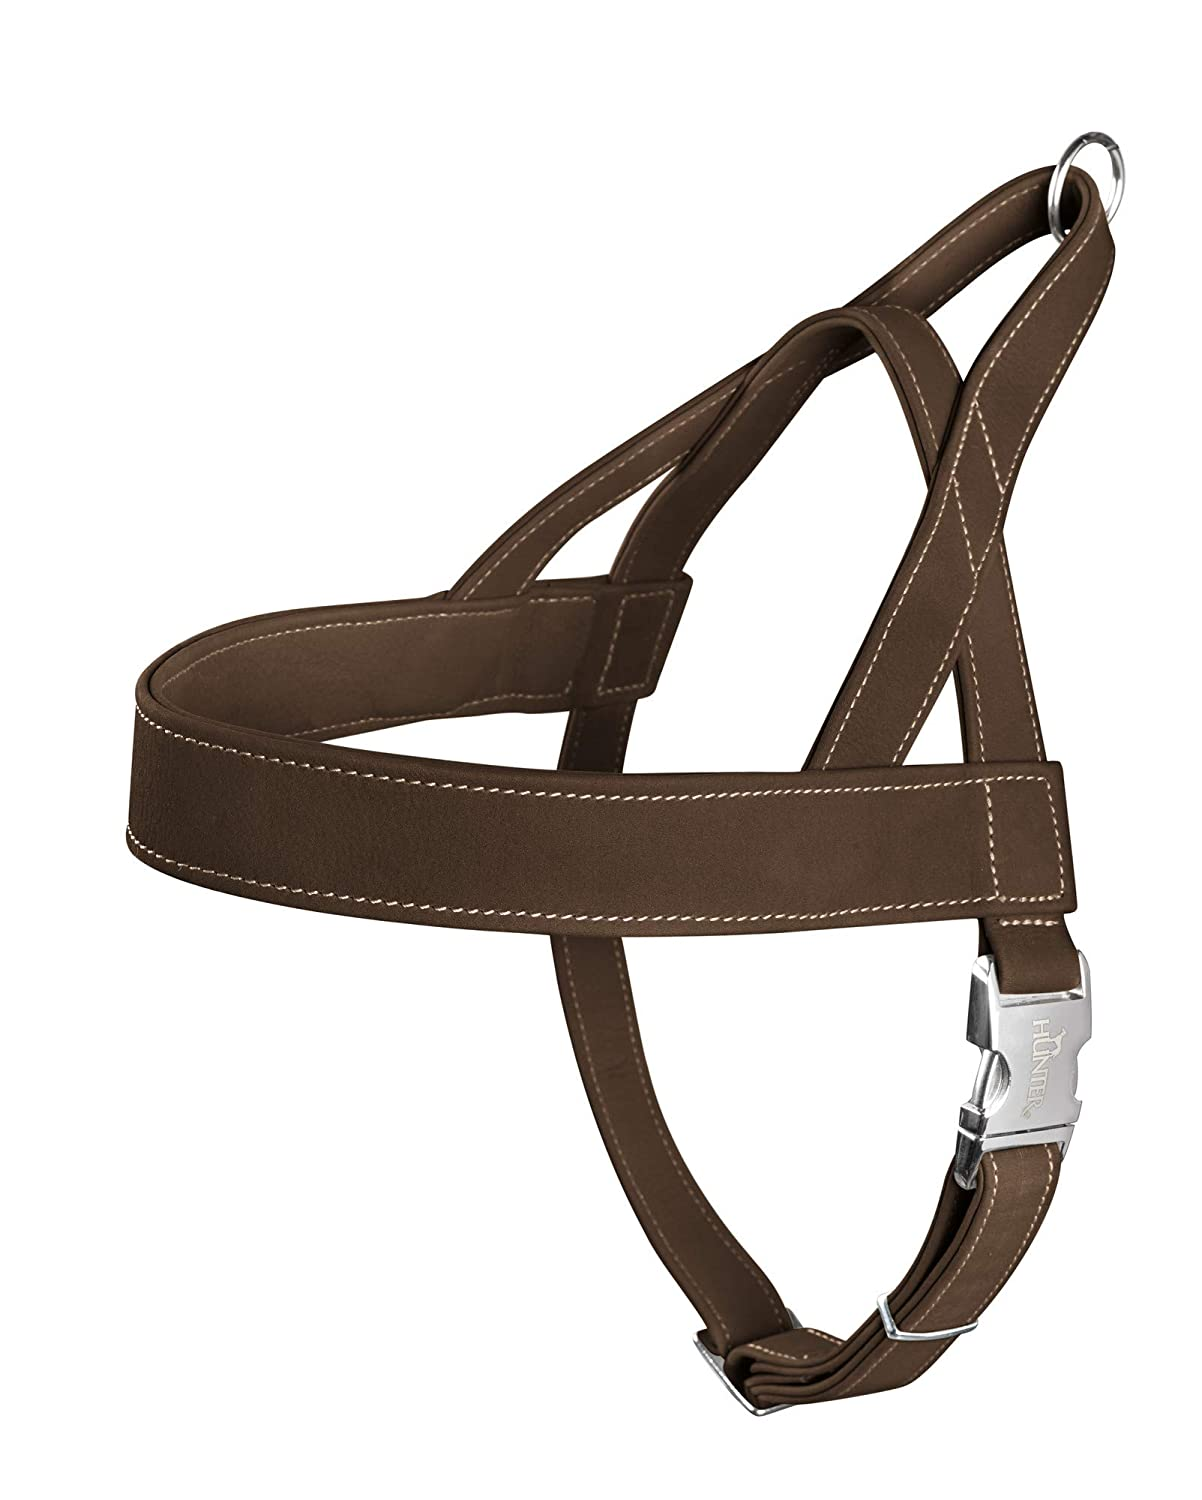 Brown 50 x 69-93 cm Brown 50 x 69-93 cm hunter Norwegian harness for Dogs Hunting, 50 x 69-93 cm, Brown